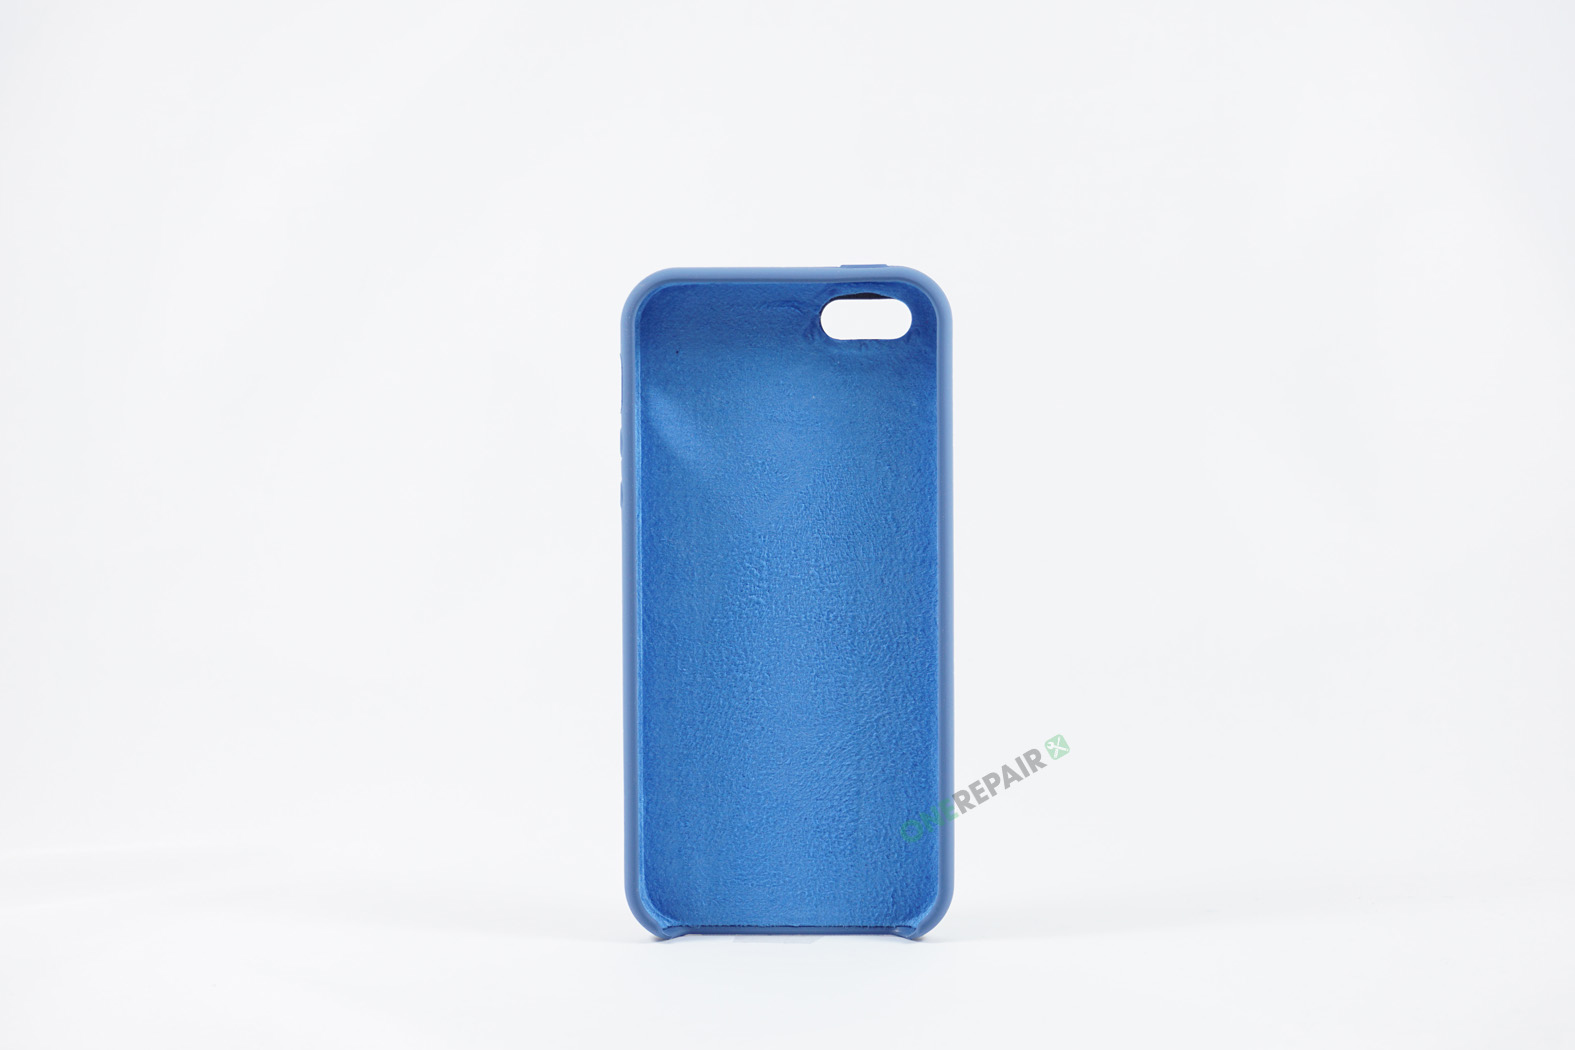 350485_iPhone_5_5S_SE_Silikone_Cover_Blaa_OneRepair_WM_00003